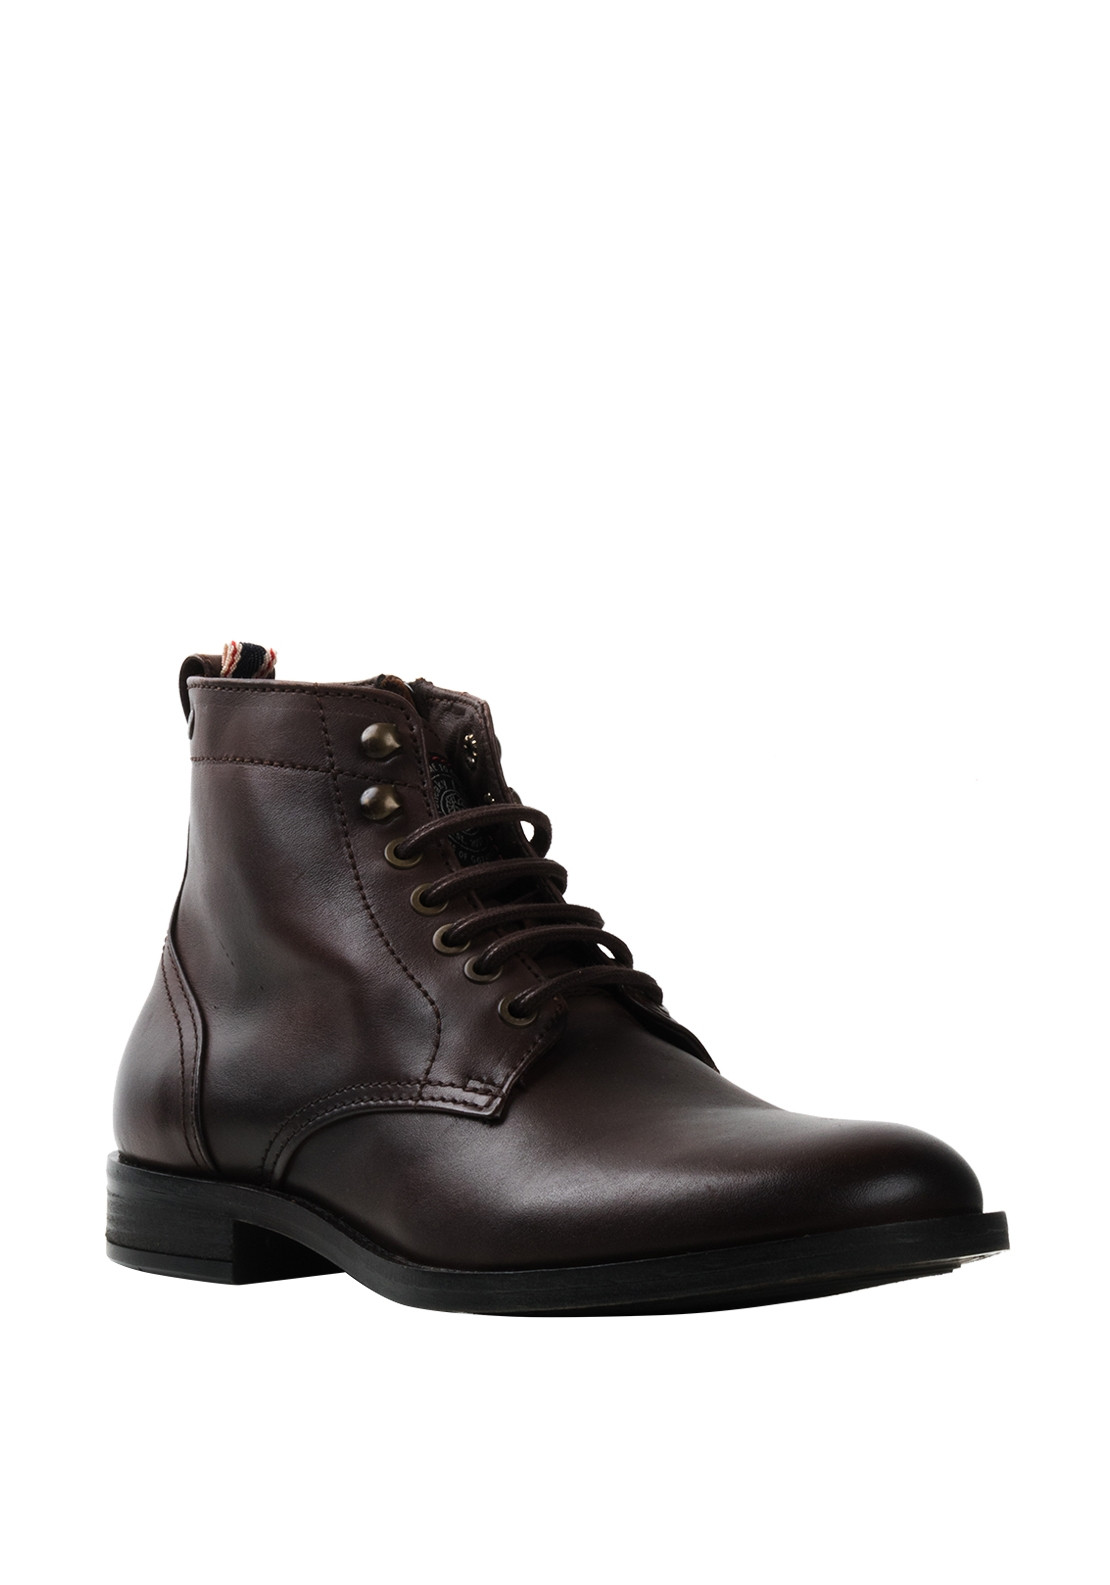 Sneaky Steve Solitude Leather Boot, Brown